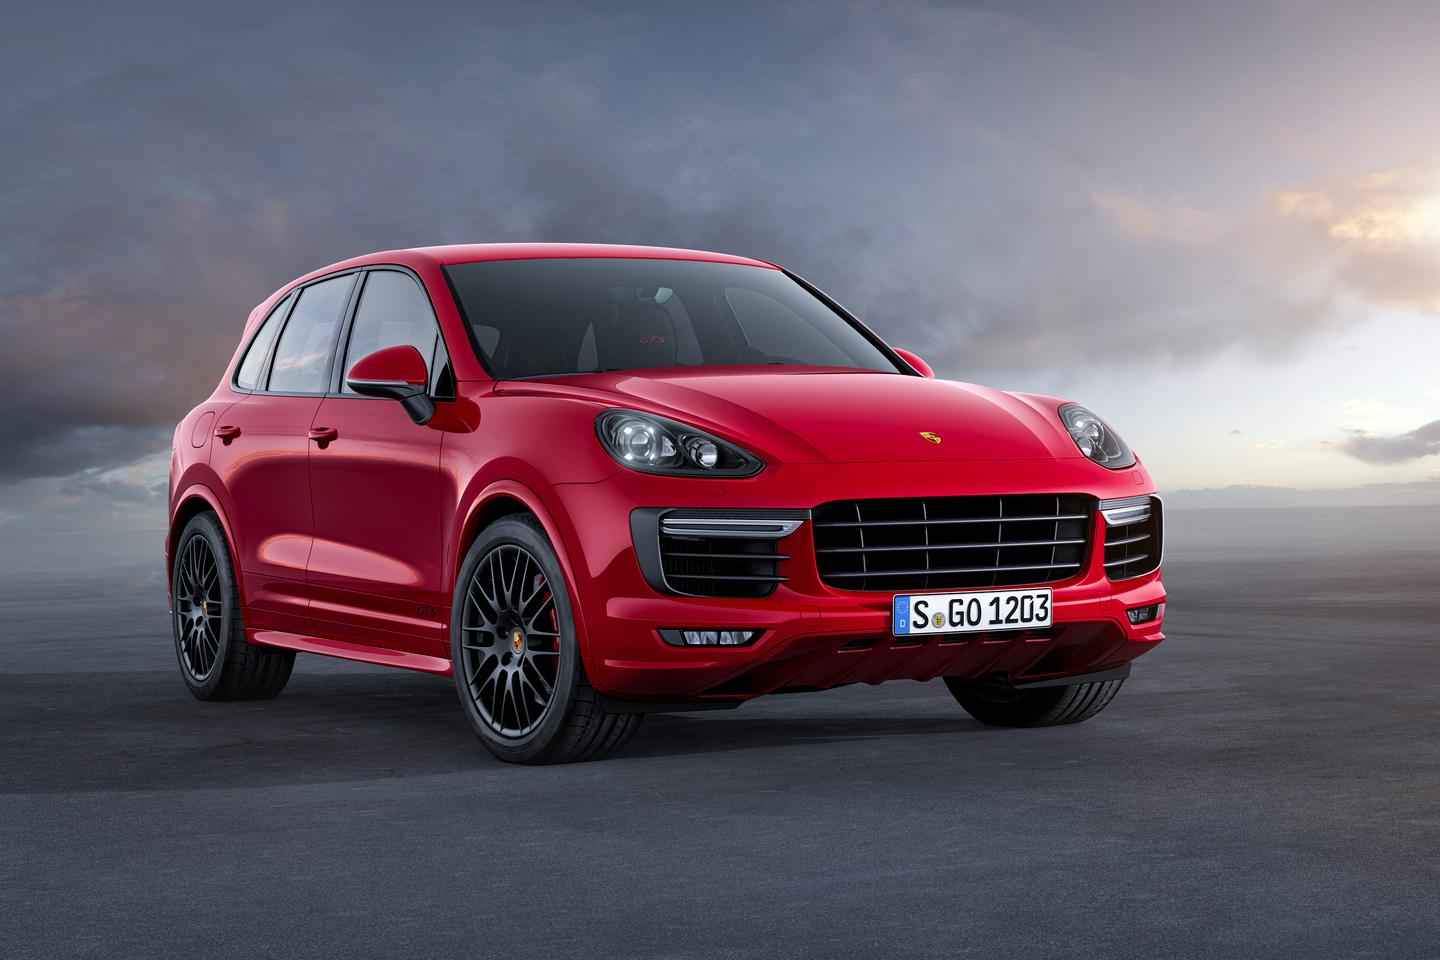 Porsche spices up Cayenne GTS with twin-turbo V6 engine